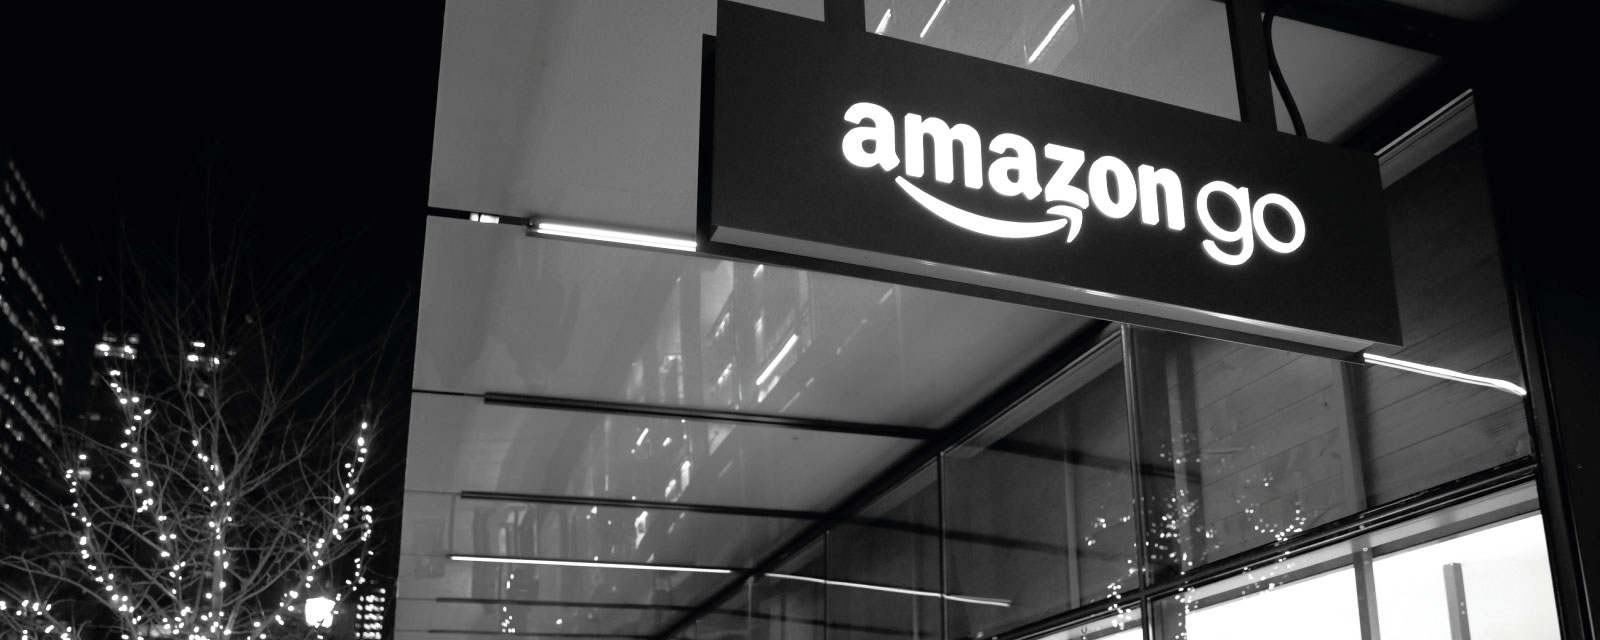 Amazon GO brings consumers out from home